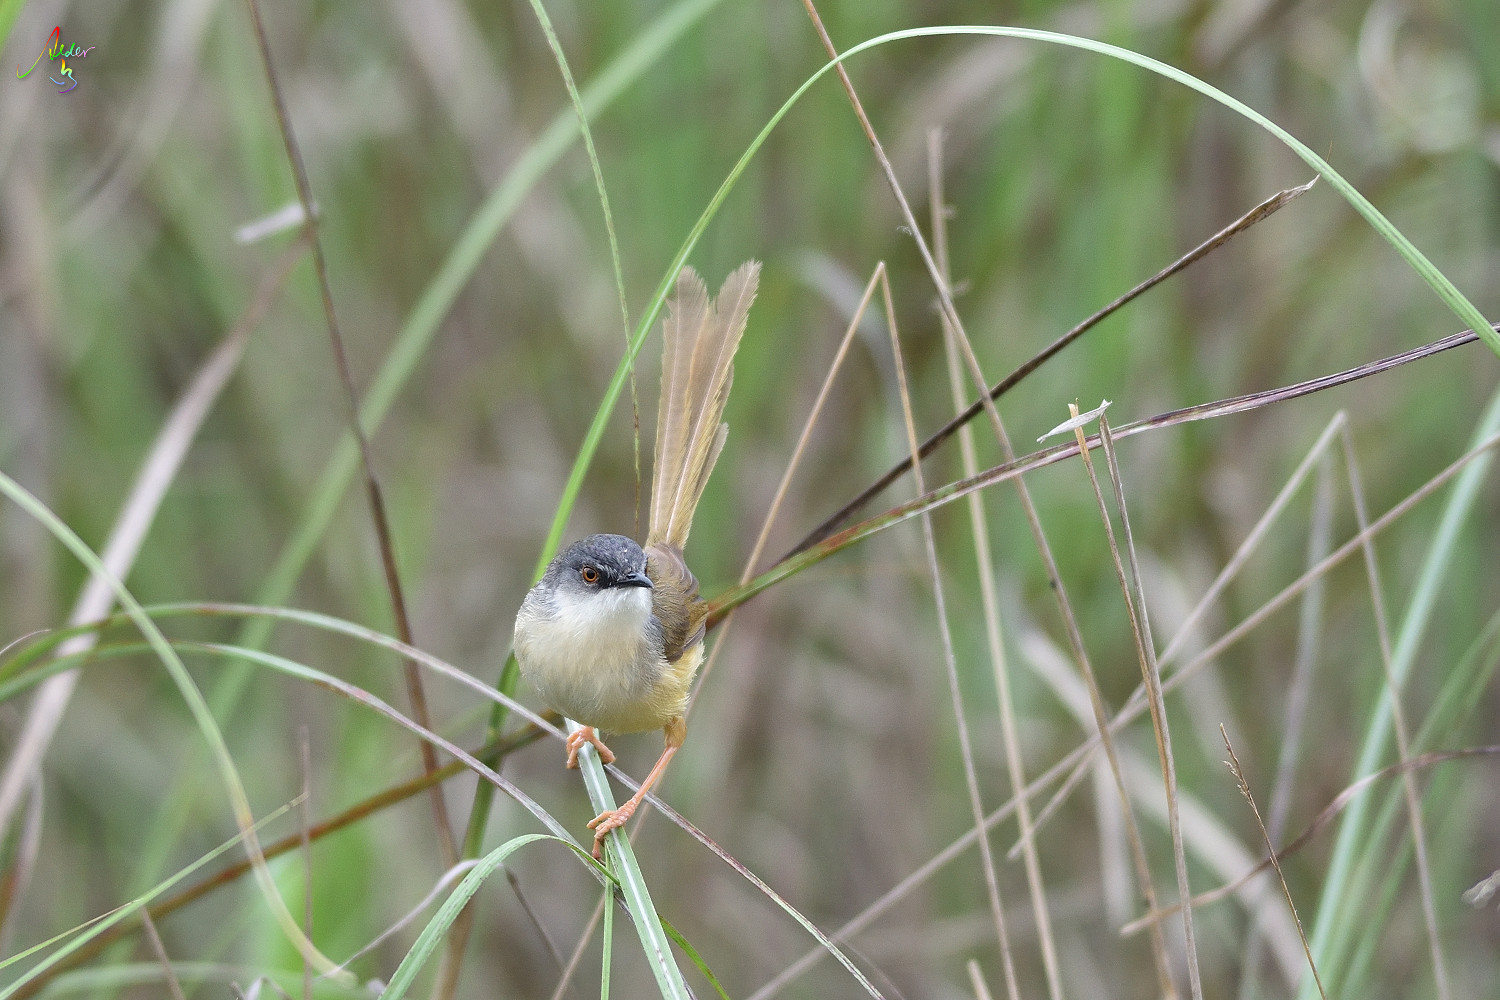 Yellow-bellied_Prinia_3263